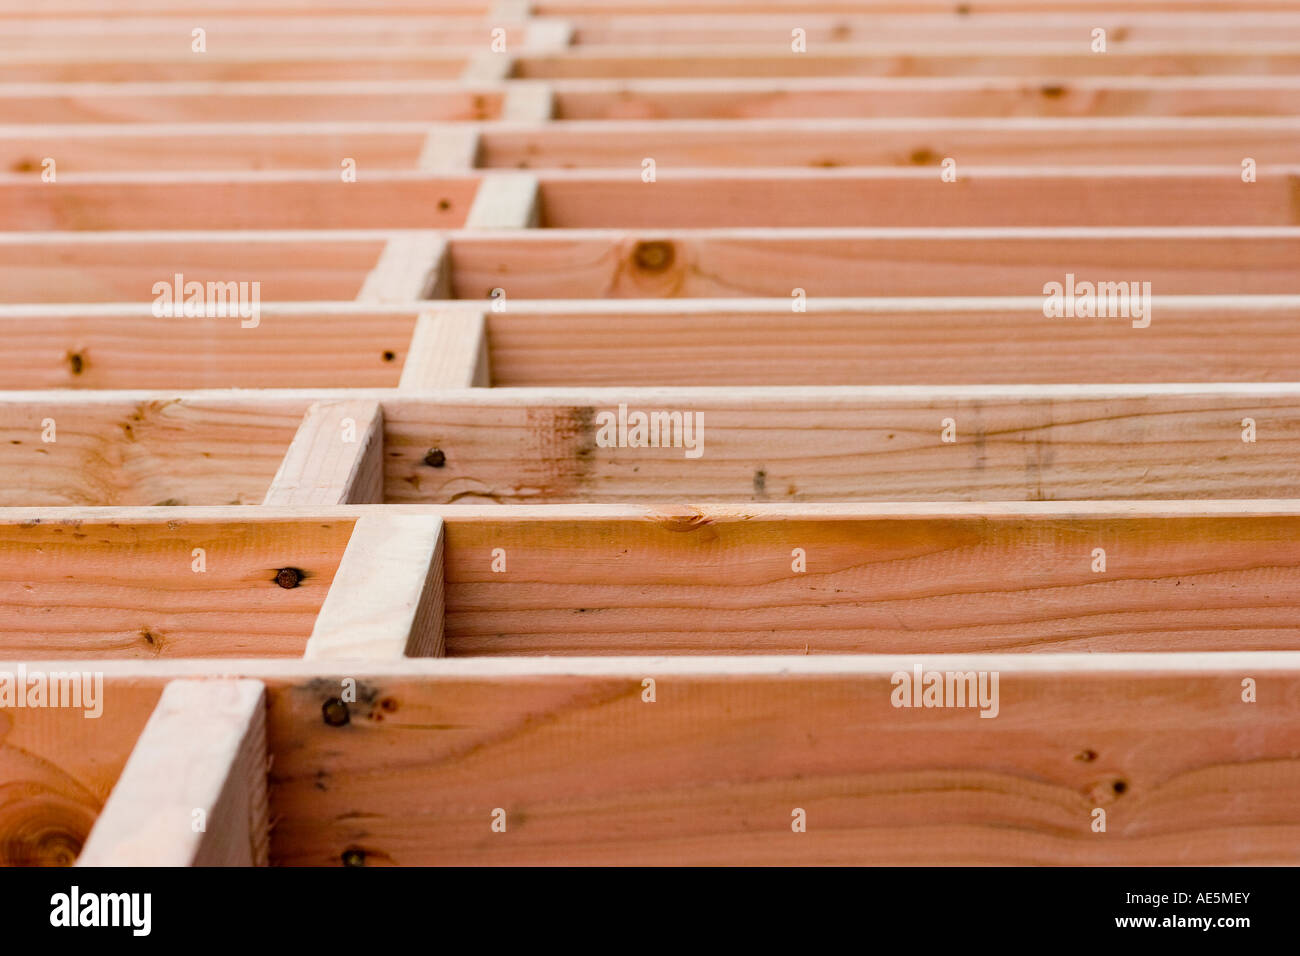 Wood Blocking In A Staggered Pattern Between Floor Joists At A